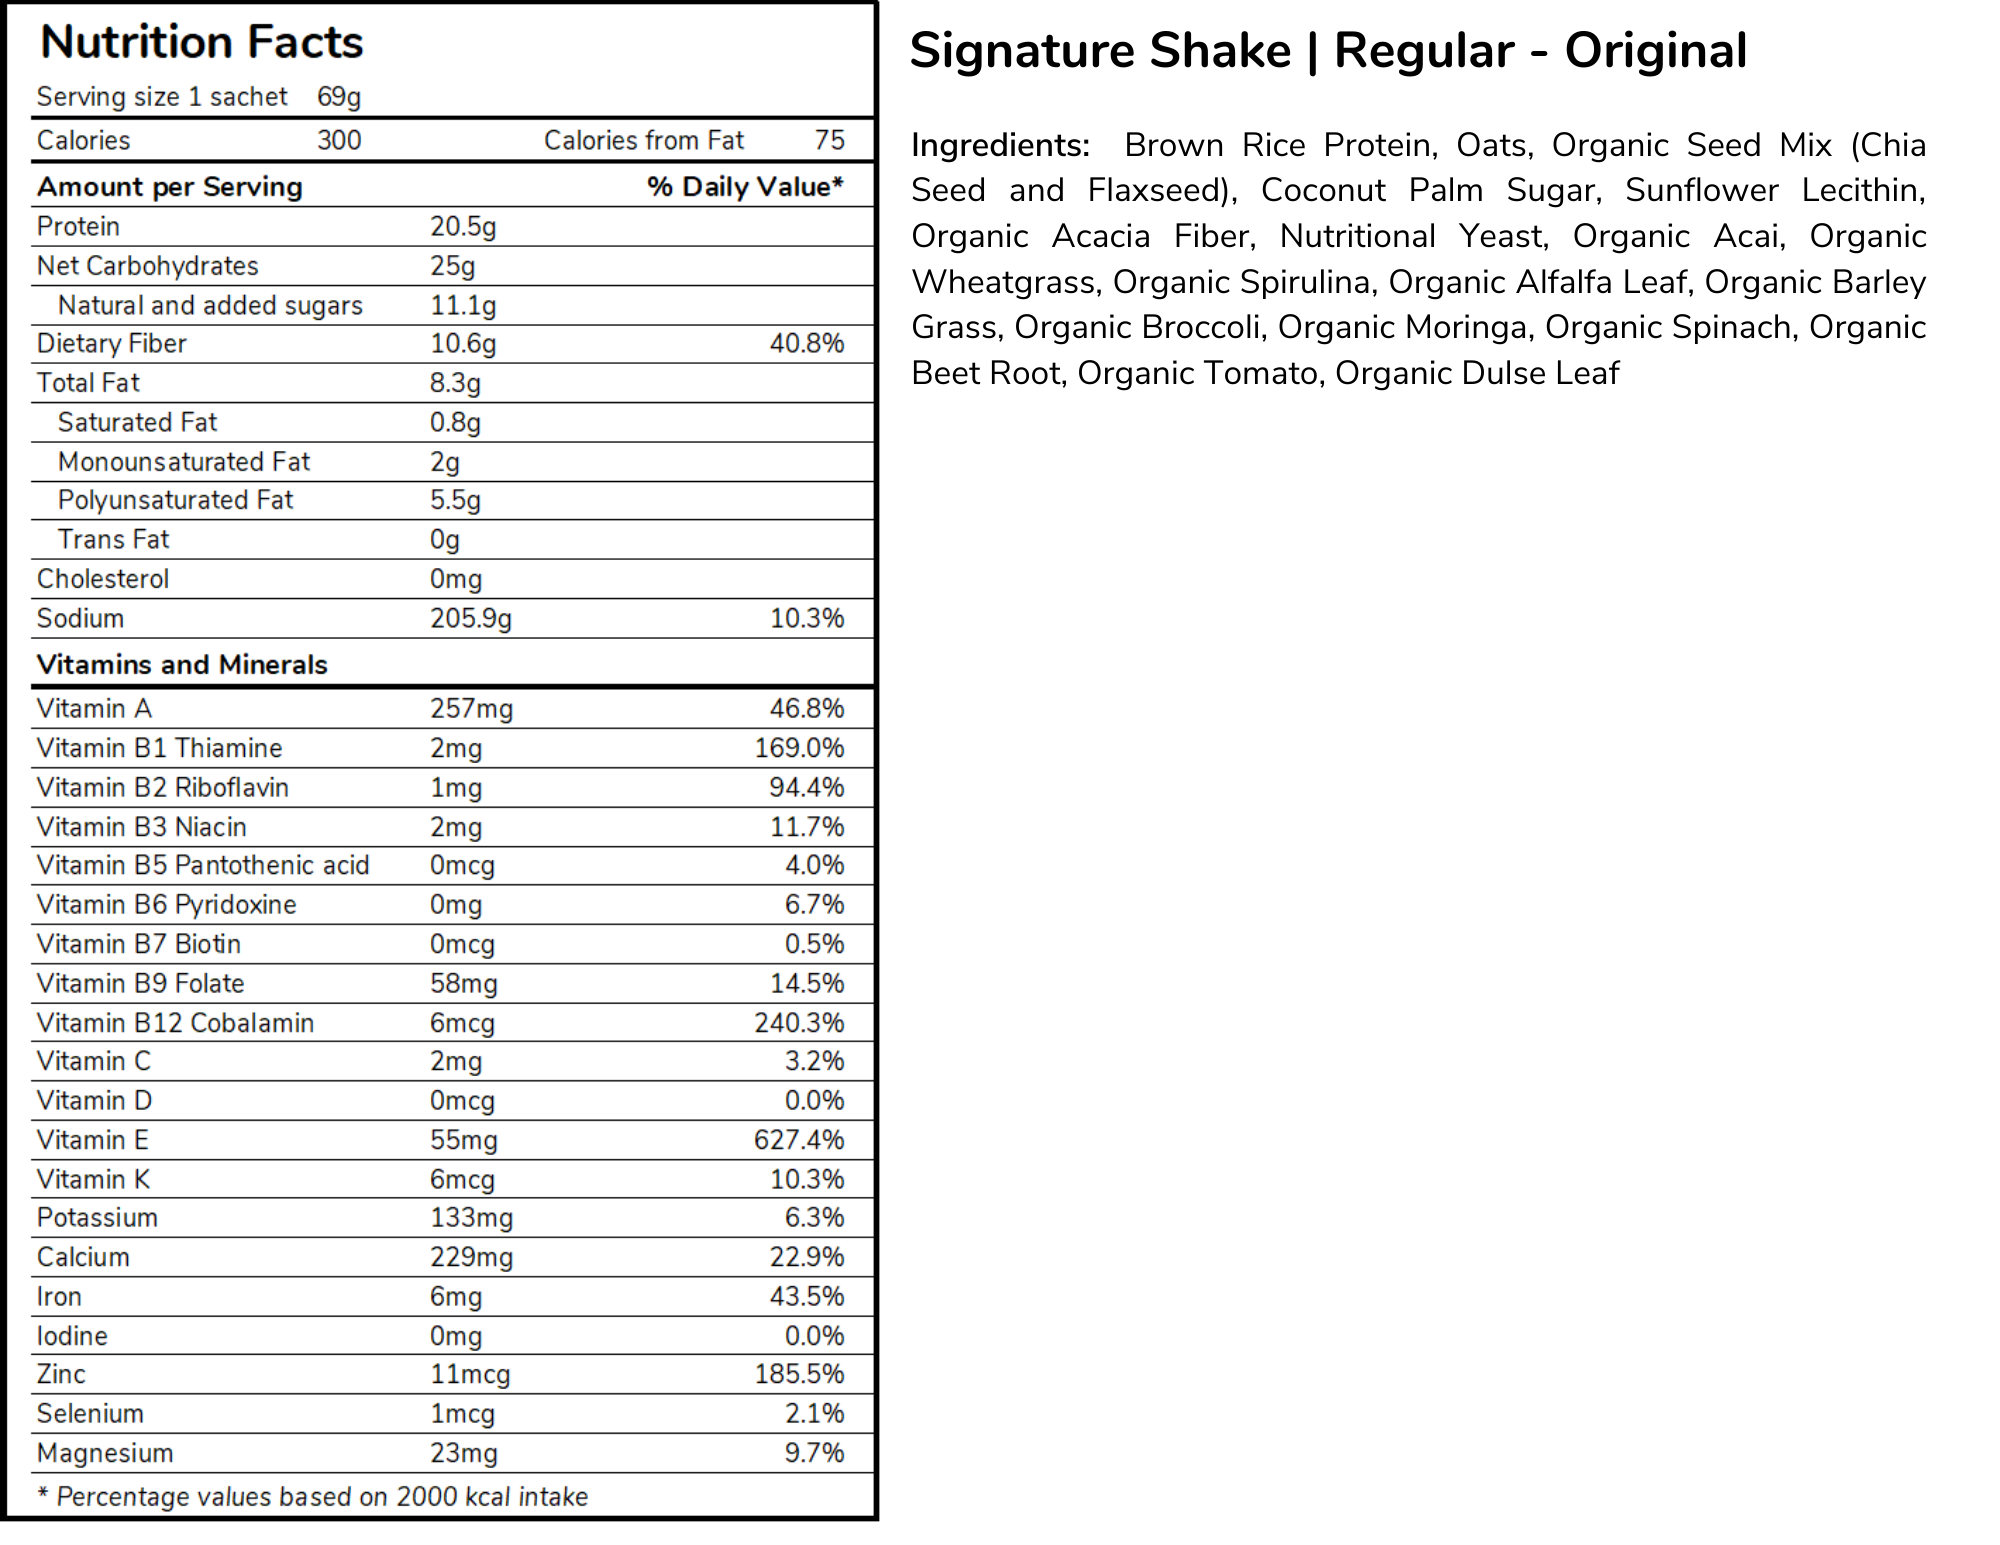 Signature meal replacement shakes regular size standard formula nutritional panel